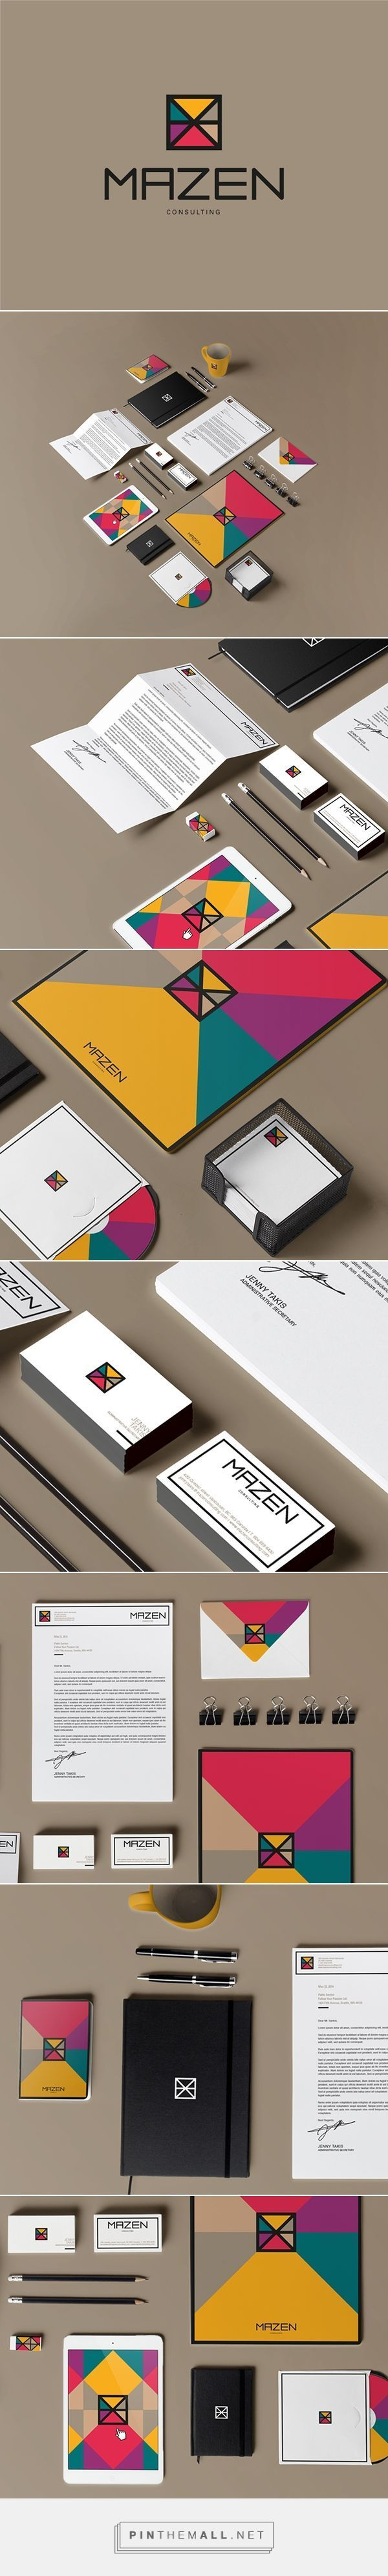 1909 best Corporate Identity images on Pinterest